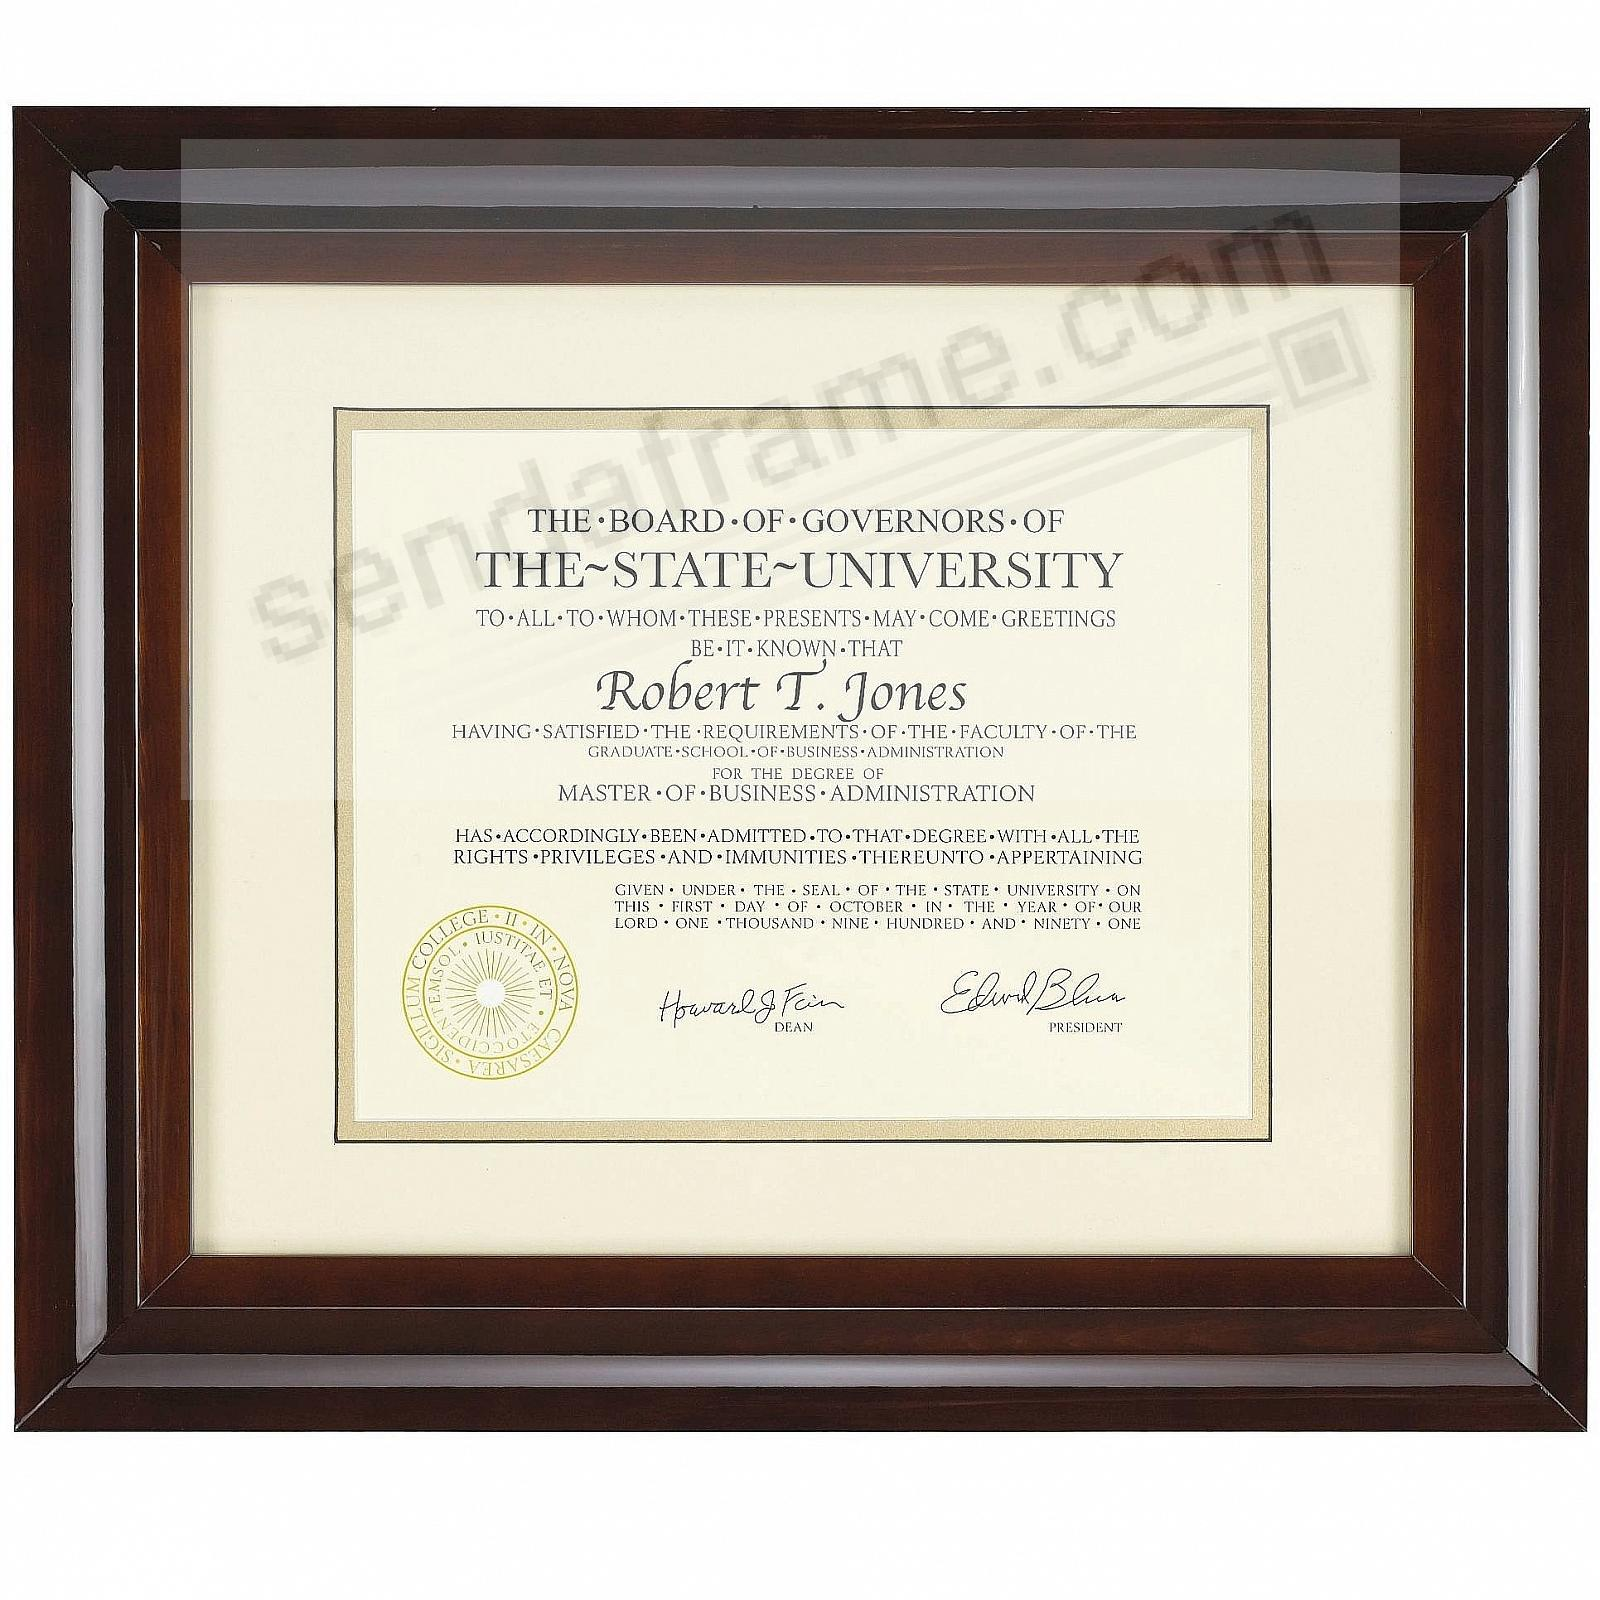 HAMPTON luxe walnut matted 15x12 / 11x8½ certificate frame by Nielsen®